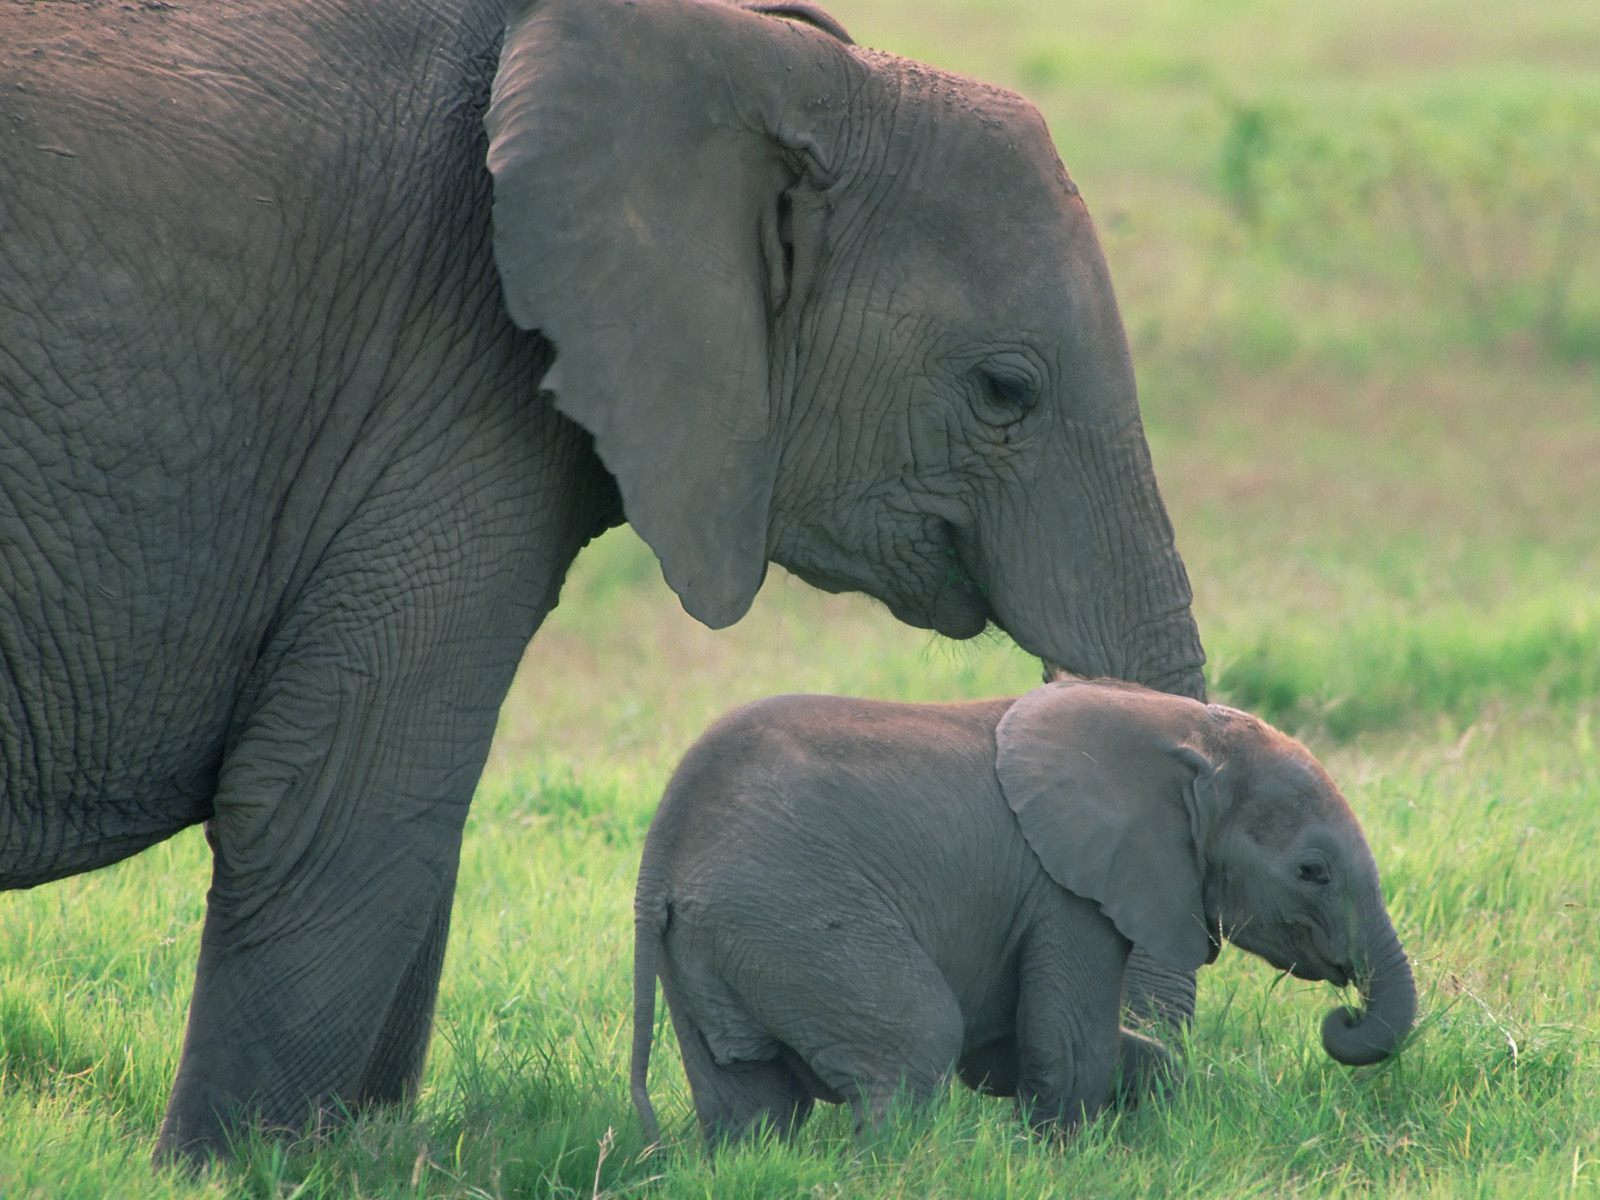 http://2.bp.blogspot.com/-WxC8q9jLmU0/Tb2wxSphvDI/AAAAAAAAIfE/X2gEDeZm38E/s1600/cute-little-african-baby-elephant-with-his-mother-pictures-wallpapers.jpg